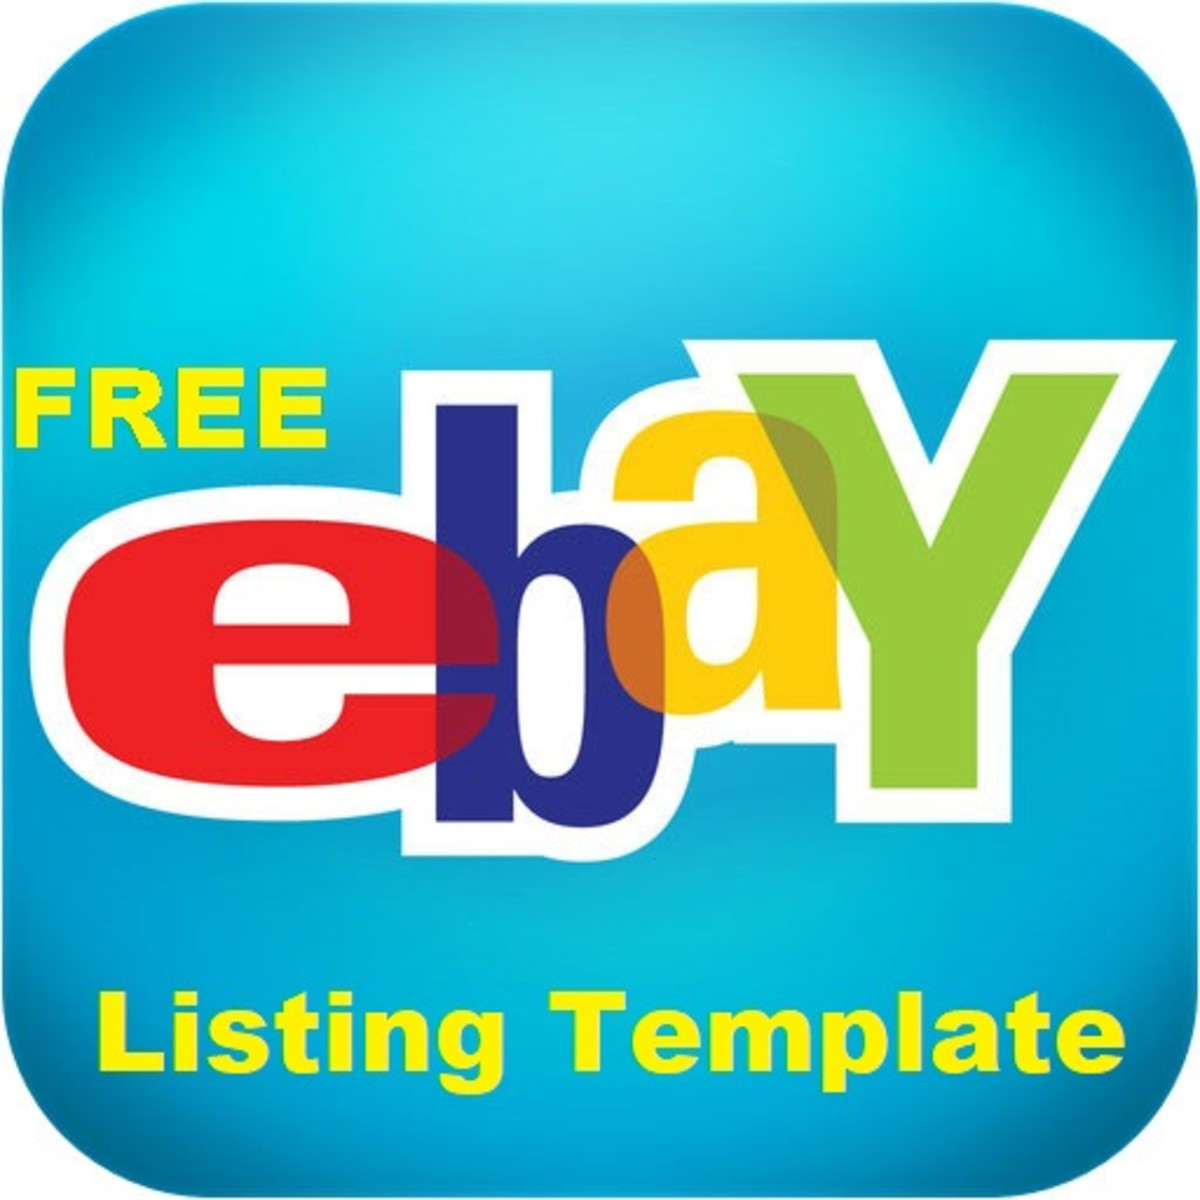 A Free Ebay Listing Template For New Sellers ToughNickel - Html ebay listing template free